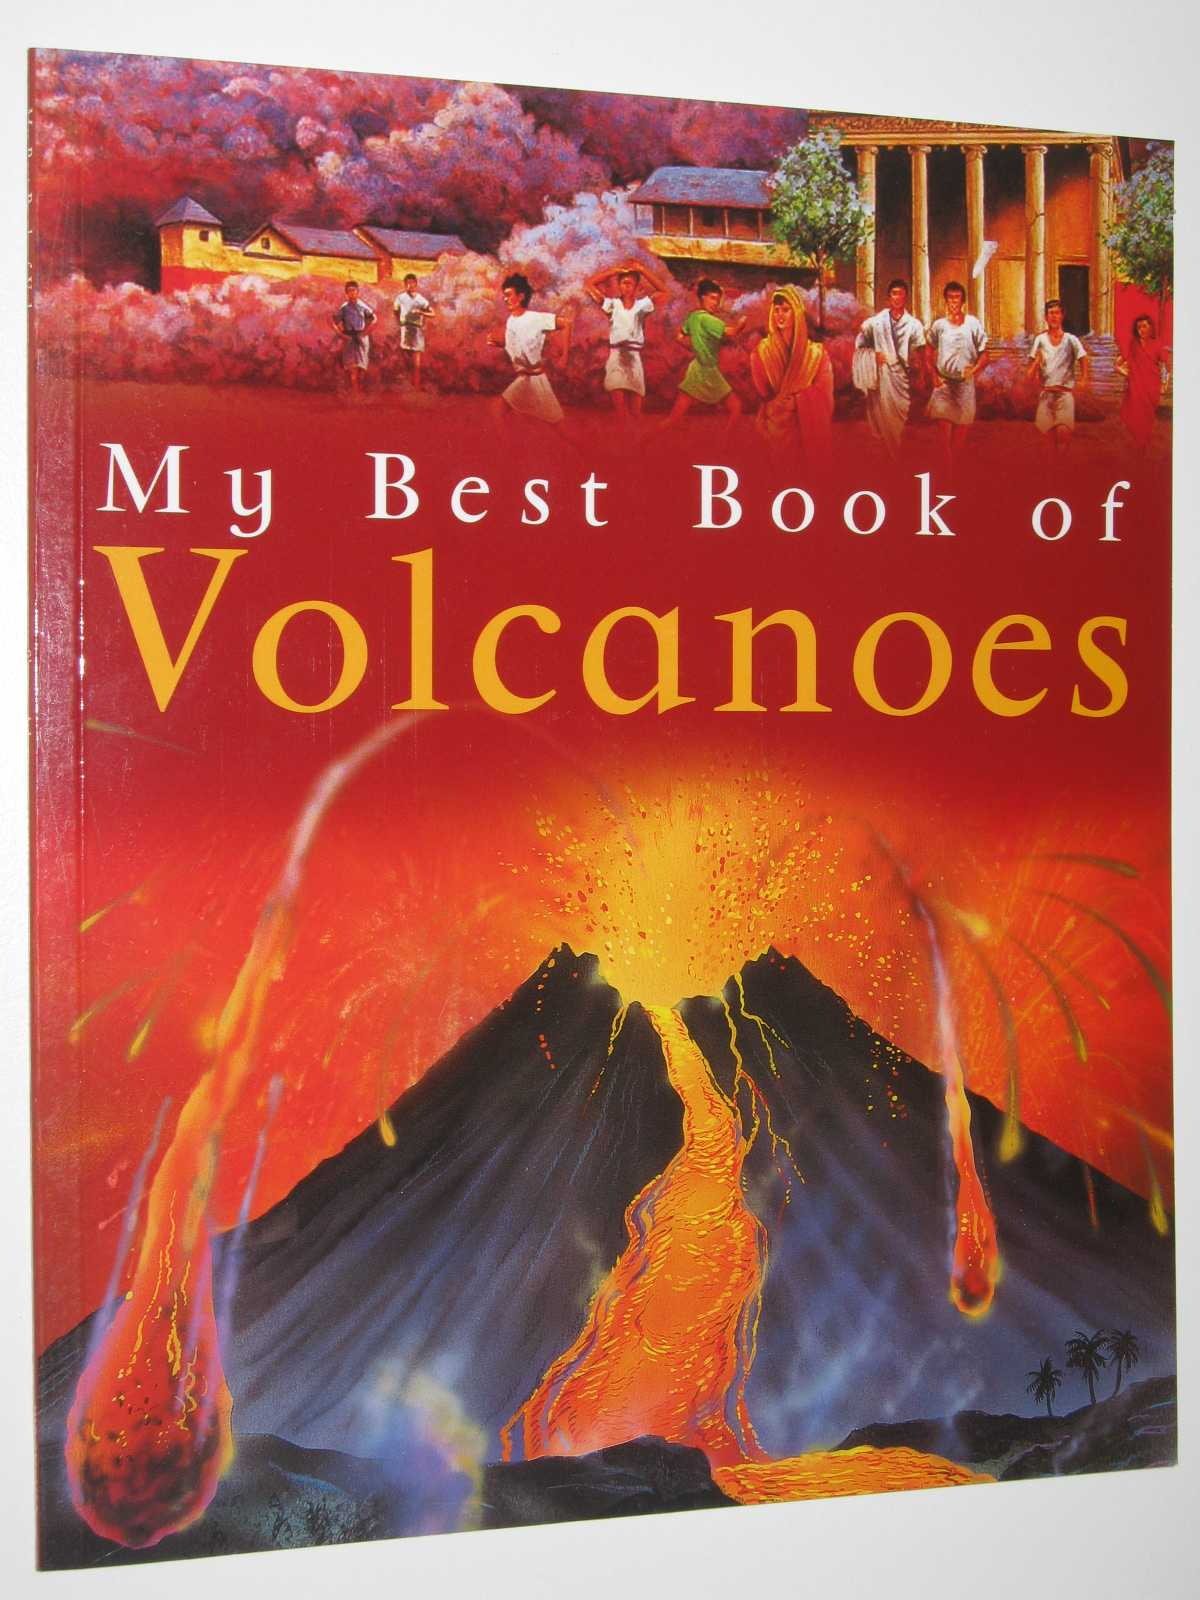 My Best Book of Volcanoes, Adams, Simon